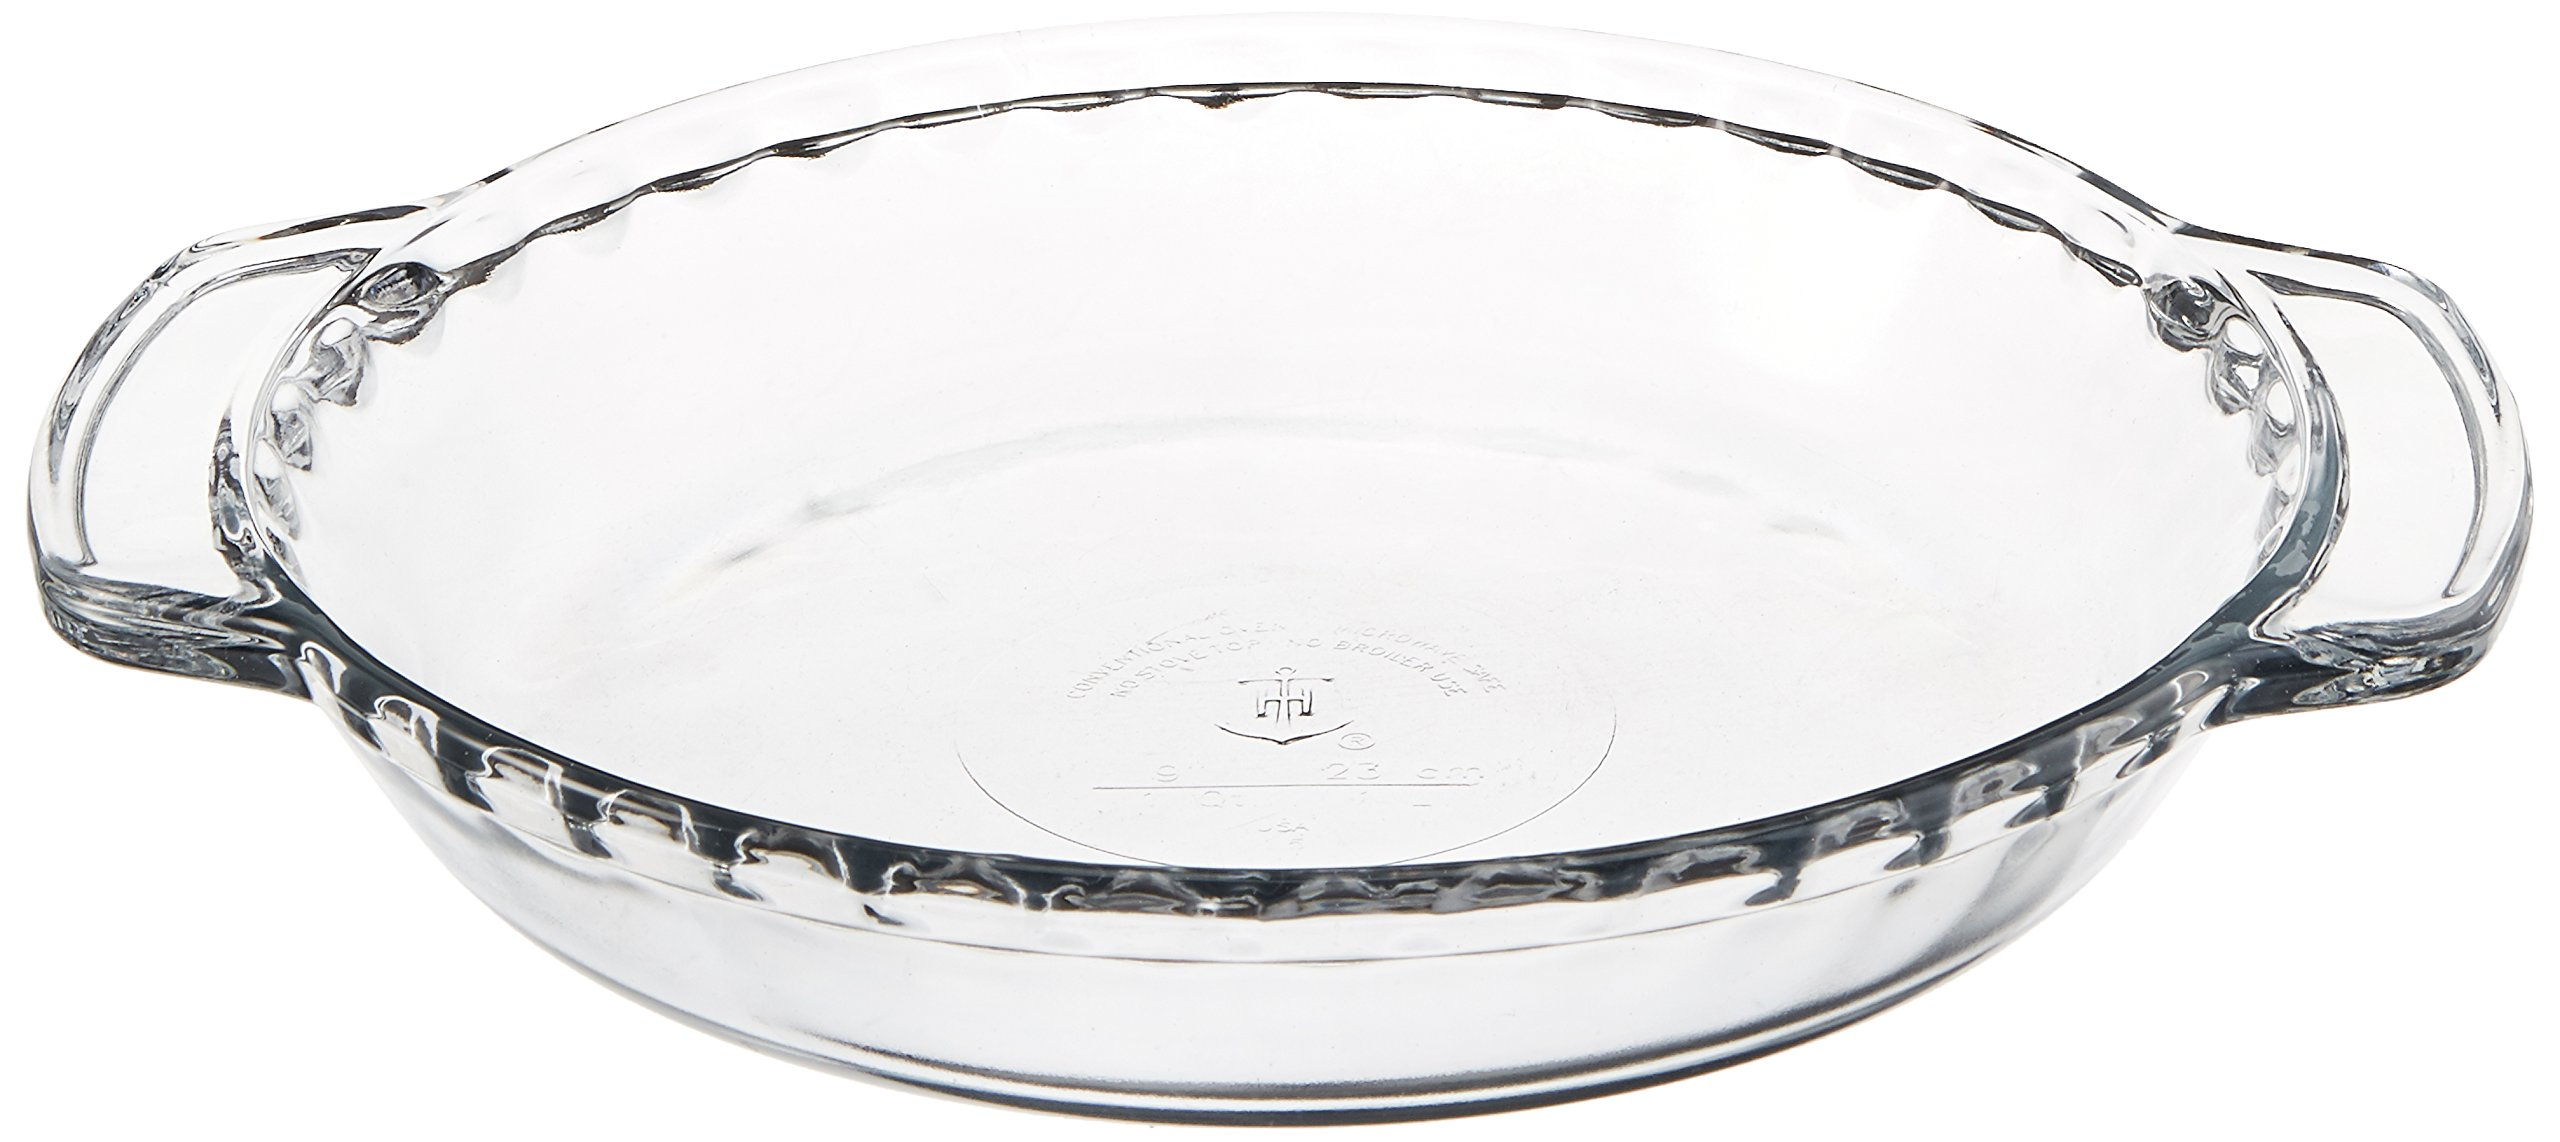 Anchor Hocking 77886 Fire-King Deep Pie Baking Dish, Glass, 9.5-Inch by Anchor Hocking